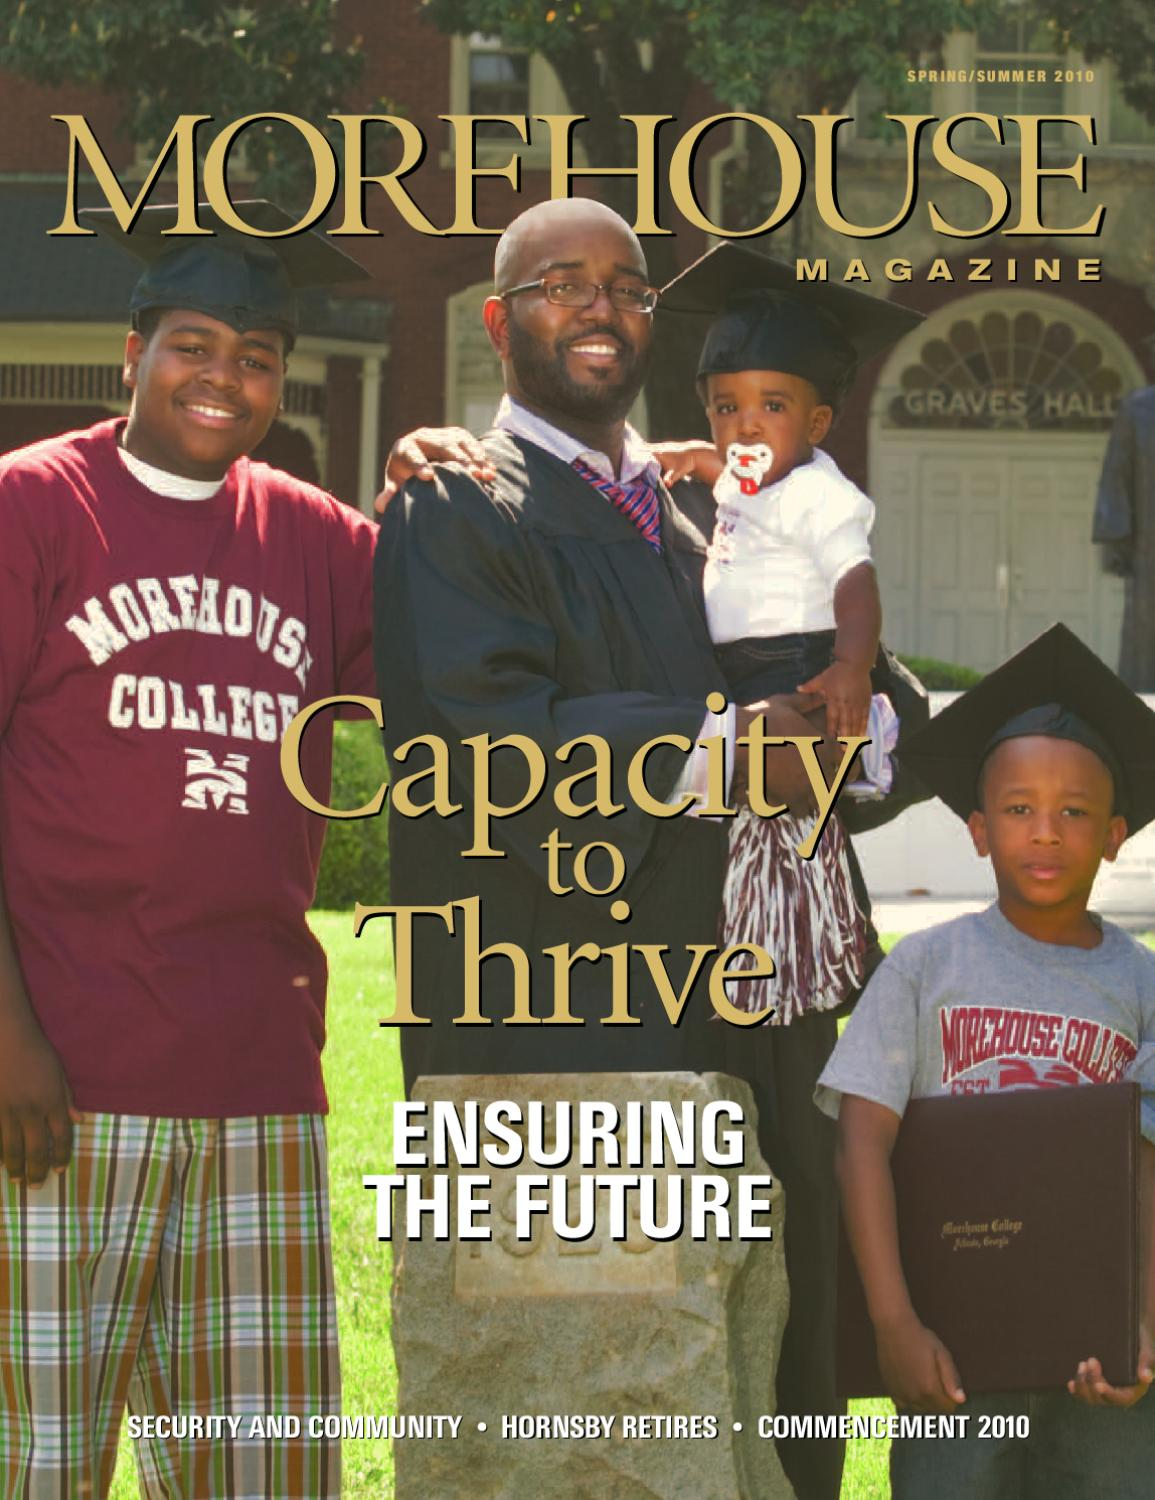 Morehouse Magazine Spring Summer 2010 By Morehouse College